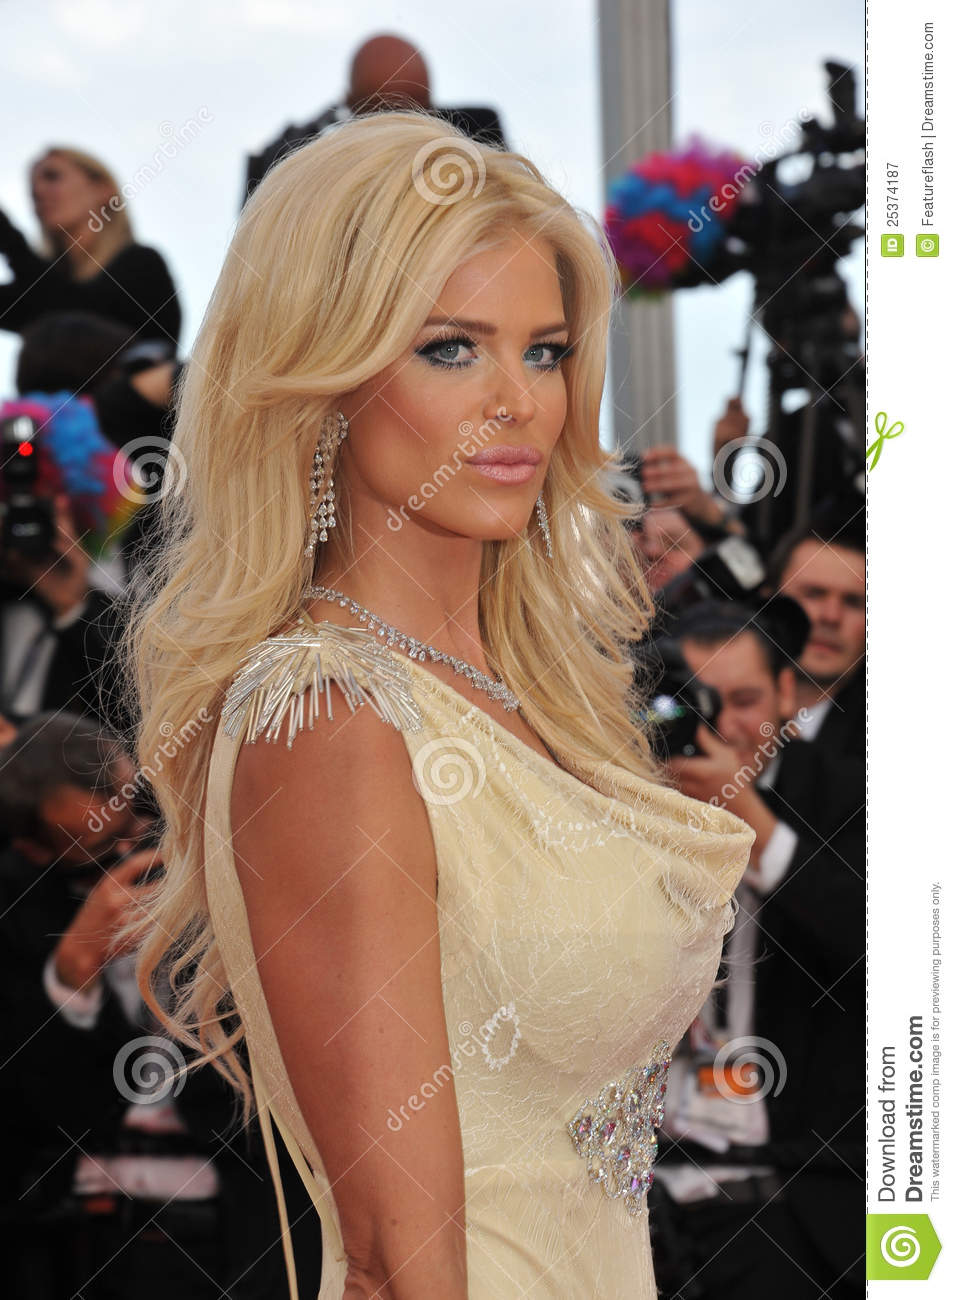 victoria silvstedt fanvictoria silvstedt dance, victoria silvstedt 2015, victoria silvstedt wallpapers, victoria silvstedt saturday night, victoria silvstedt fan, victoria silvstedt photo instagram, victoria silvstedt new boyfriend, victoria silvstedt dress, victoria silvstedt 1993, victoria silvstedt, victoria silvstedt 2014, victoria silvstedt twitter, victoria silvstedt wiki, victoria silvstedt height, victoria silvstedt instagram, victoria silvstedt blogg, victoria silvstedt wikipedia